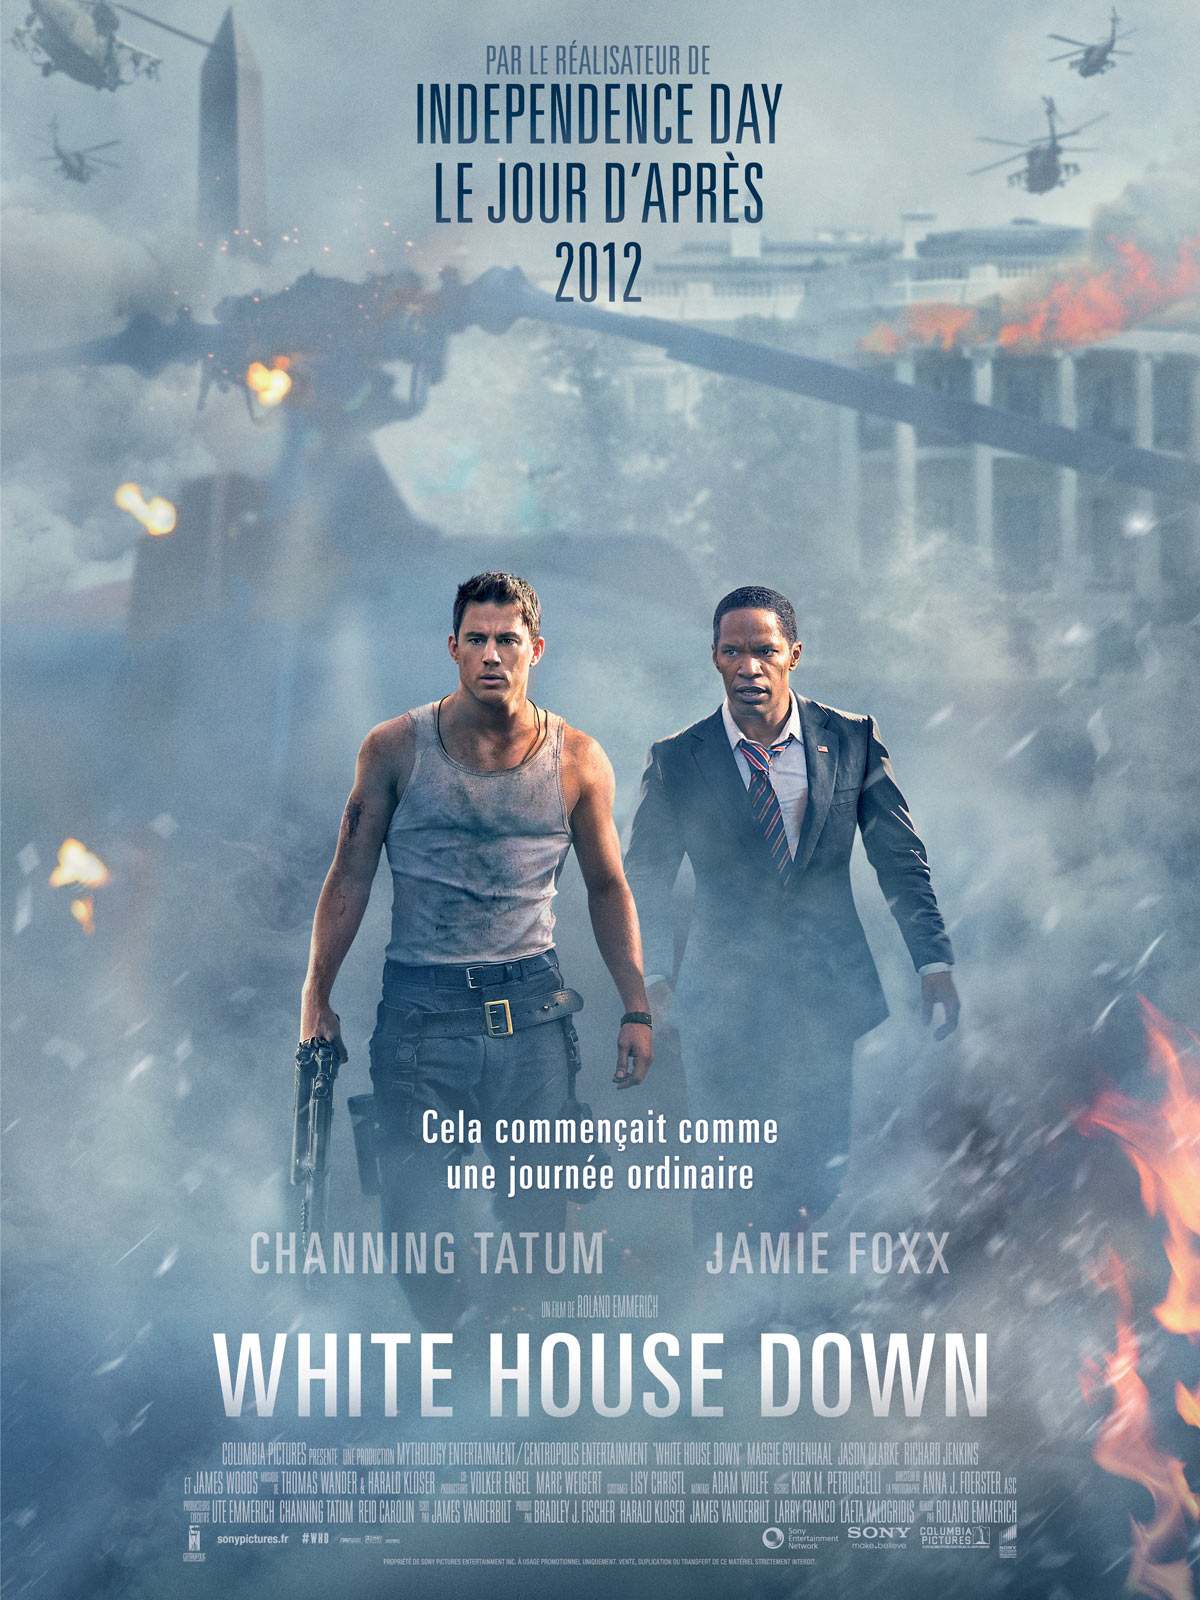 White House Down (2013) - bookish beauty